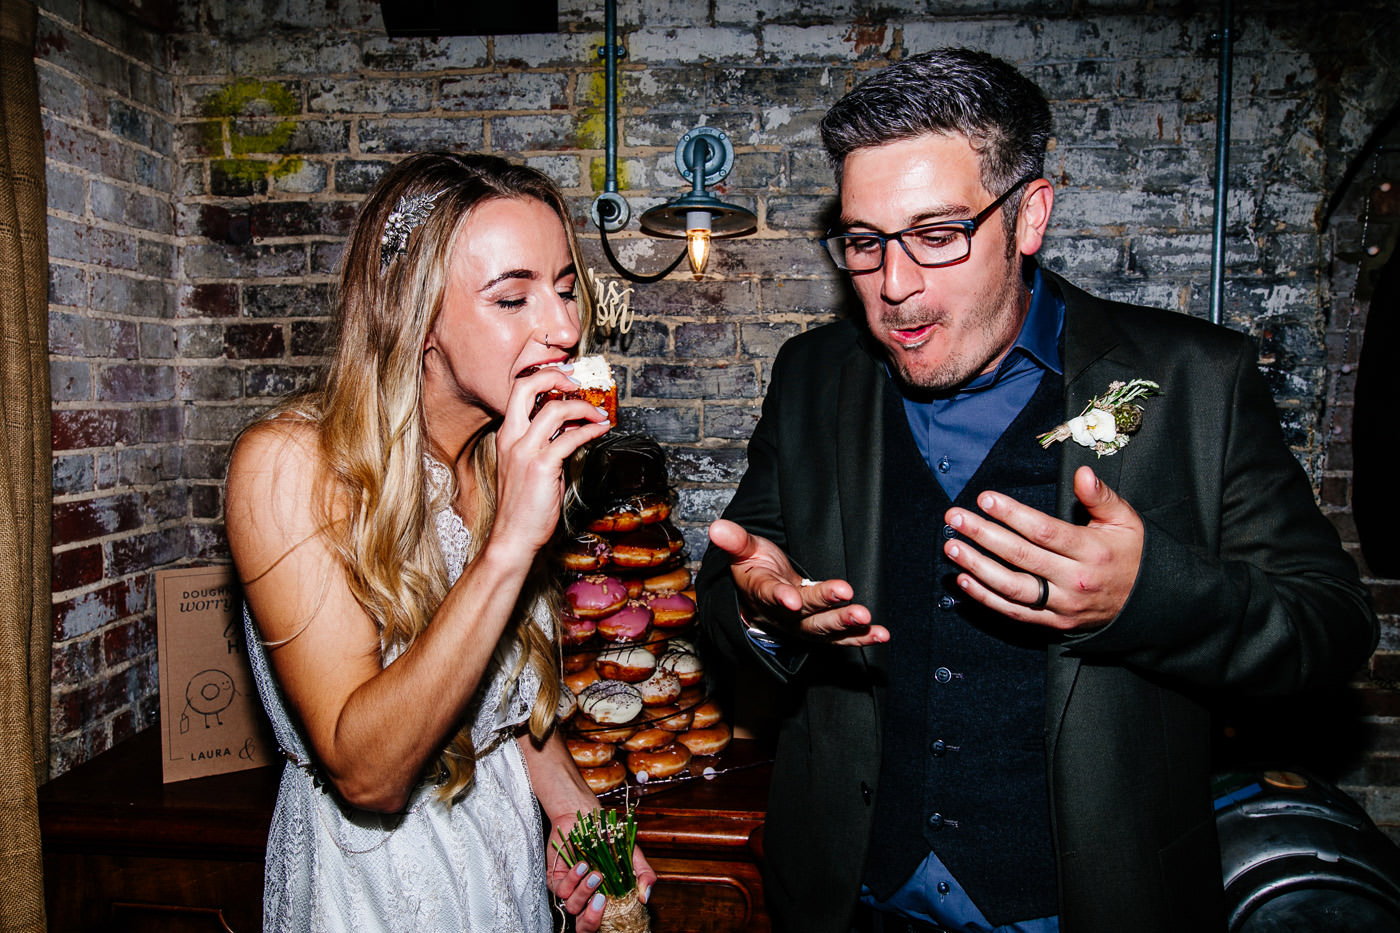 The-bell-in-Ticehurst-pub-kent-wedding-photographer-London-Epic-Love-Story-099